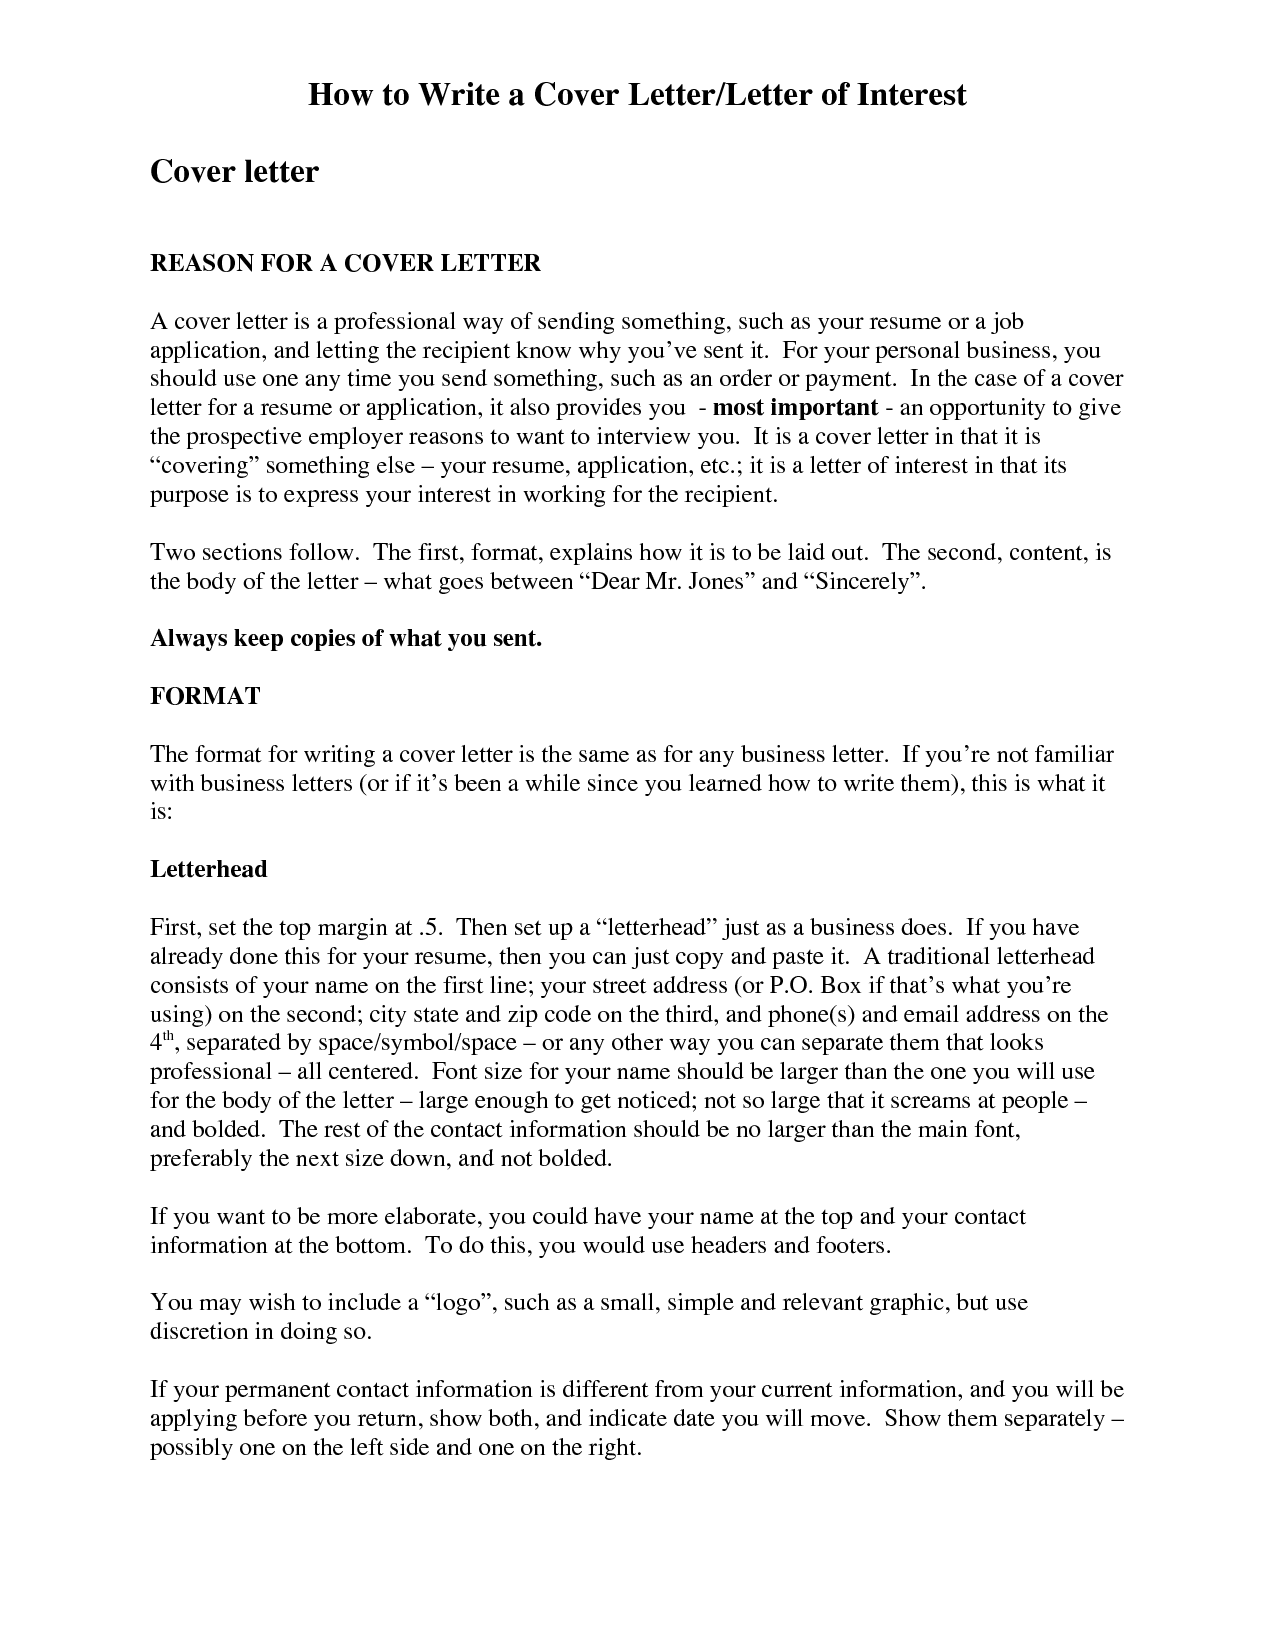 how to writea cover letter - how to write a cover letter of interest example for a job